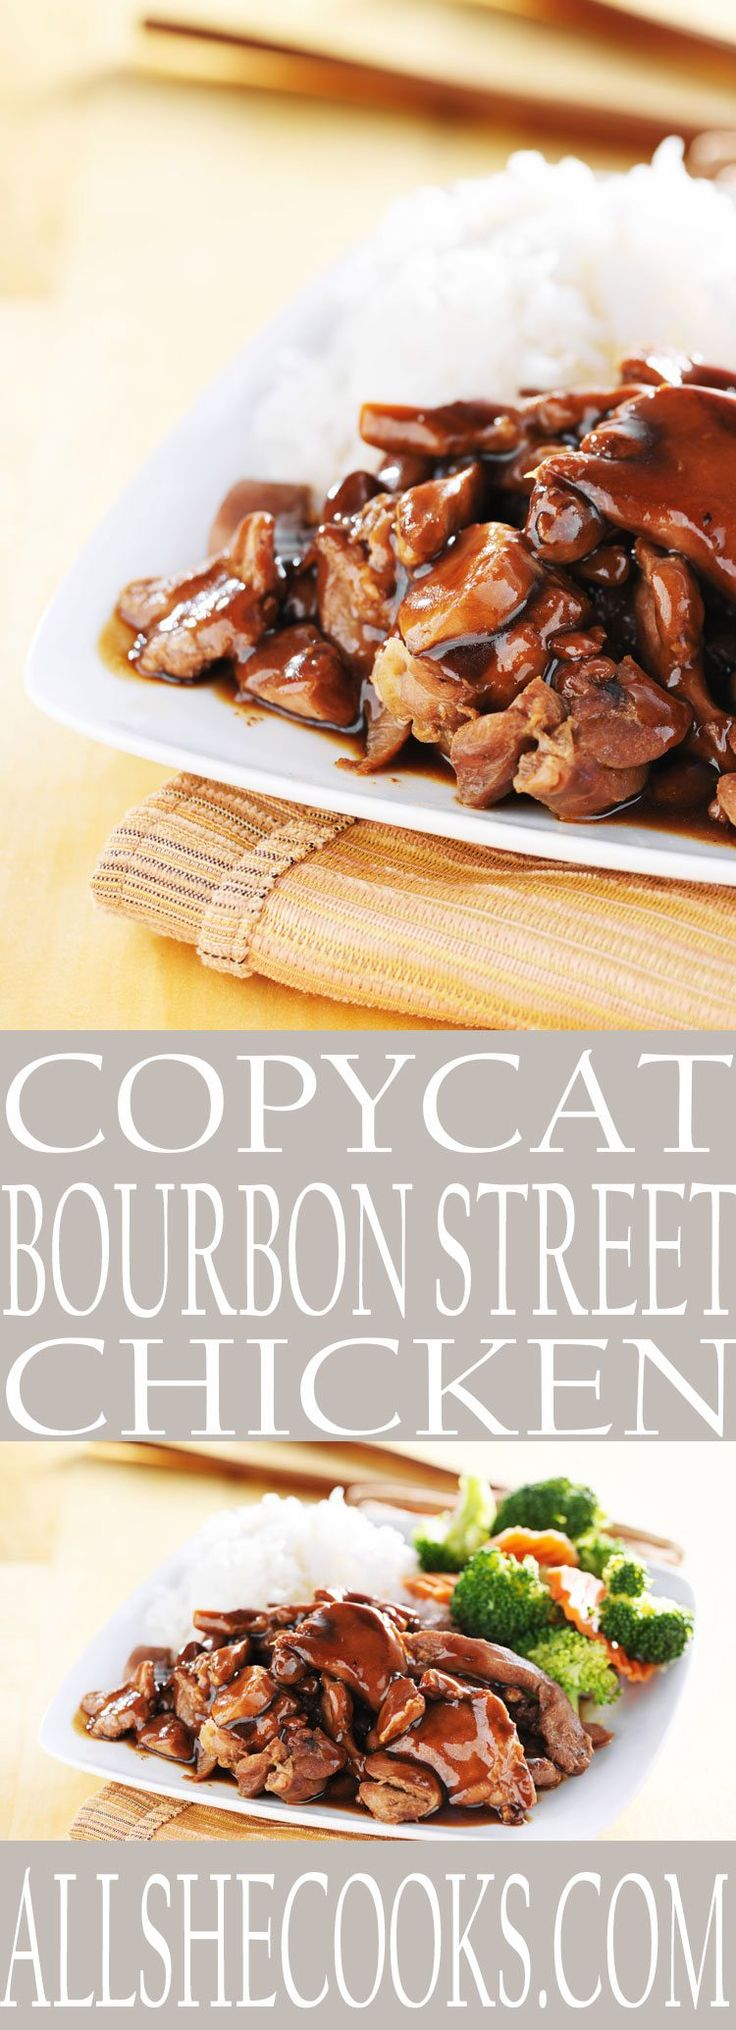 Enjoy Copycat Golden Corral's Bourbon Street Chicken recipe right at home with this copycat recipe. Tasty and delicious, this recipe is a winner.